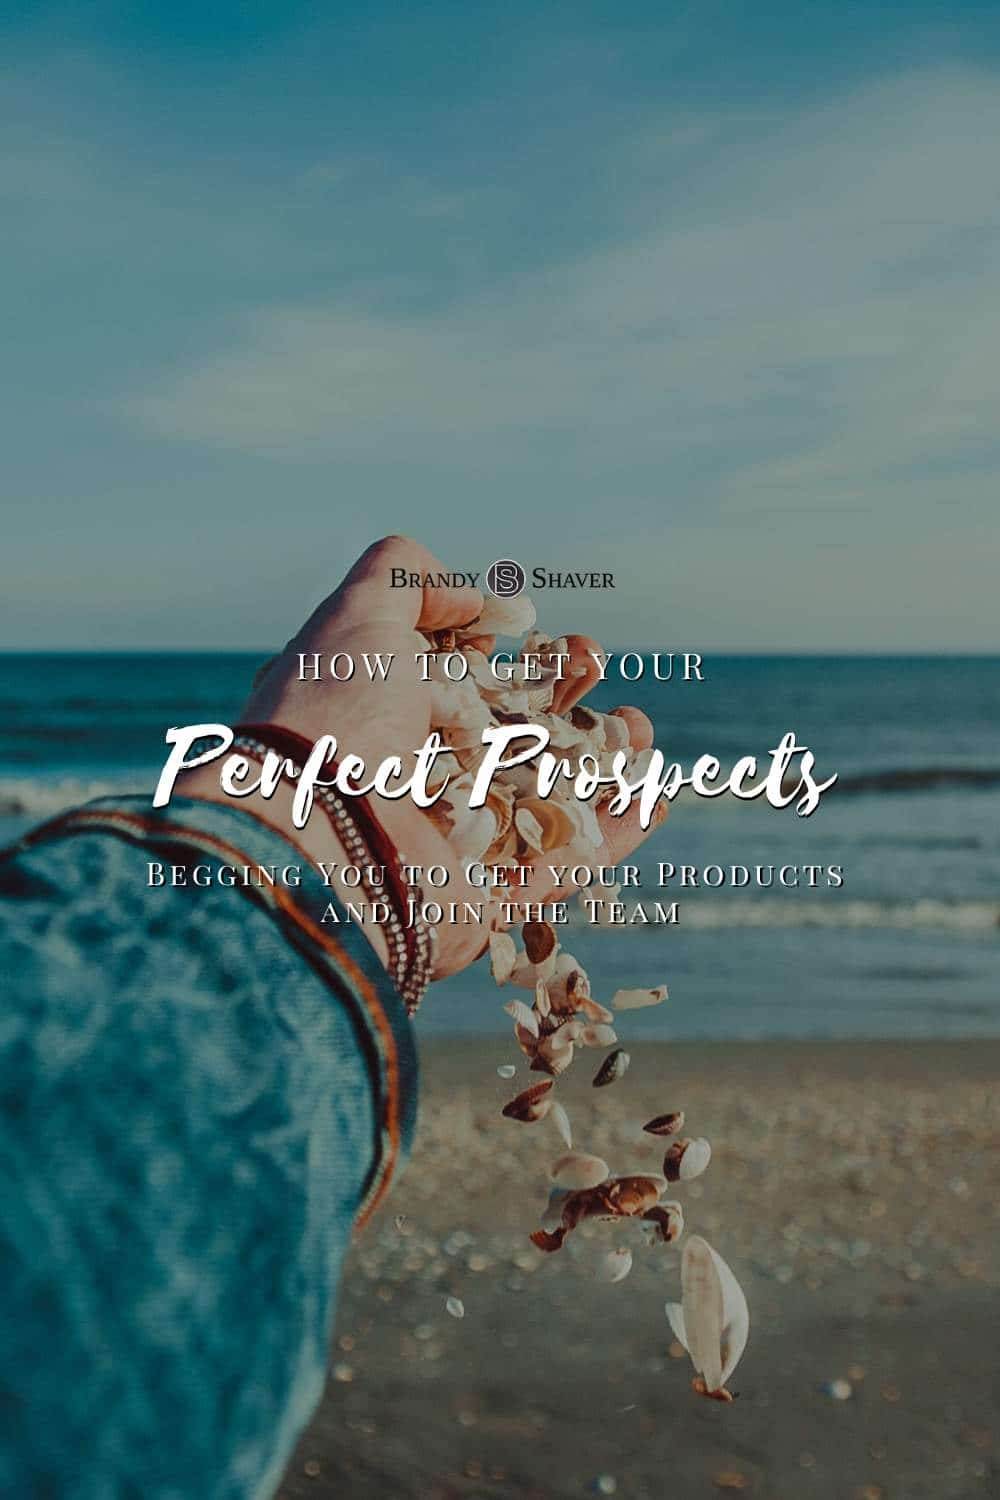 Perfect Prospects - How to get them!